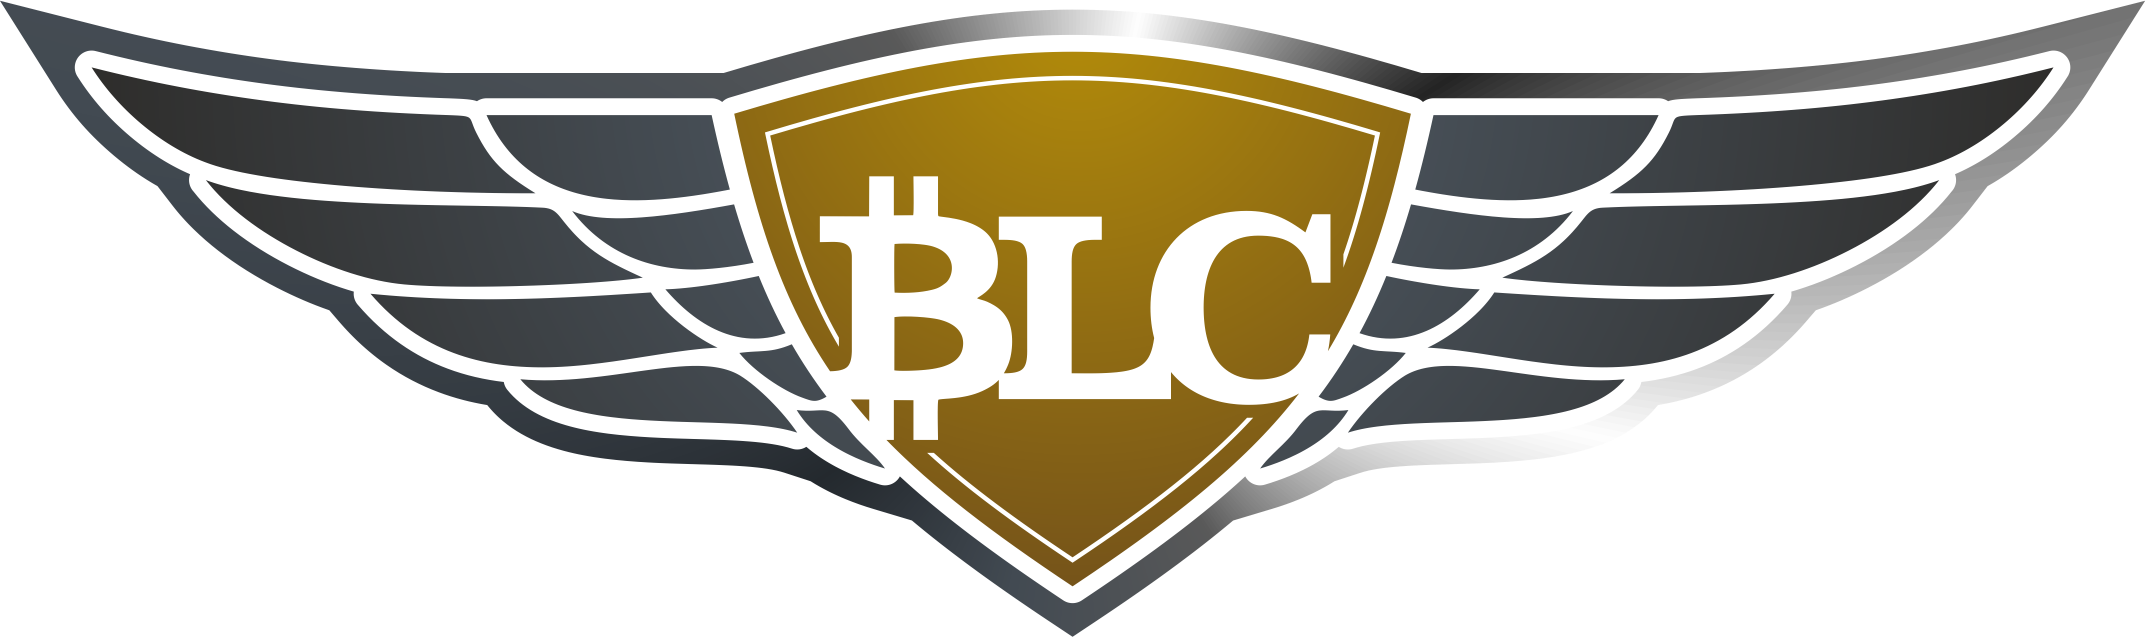 Bitcoin Lifestyles Club